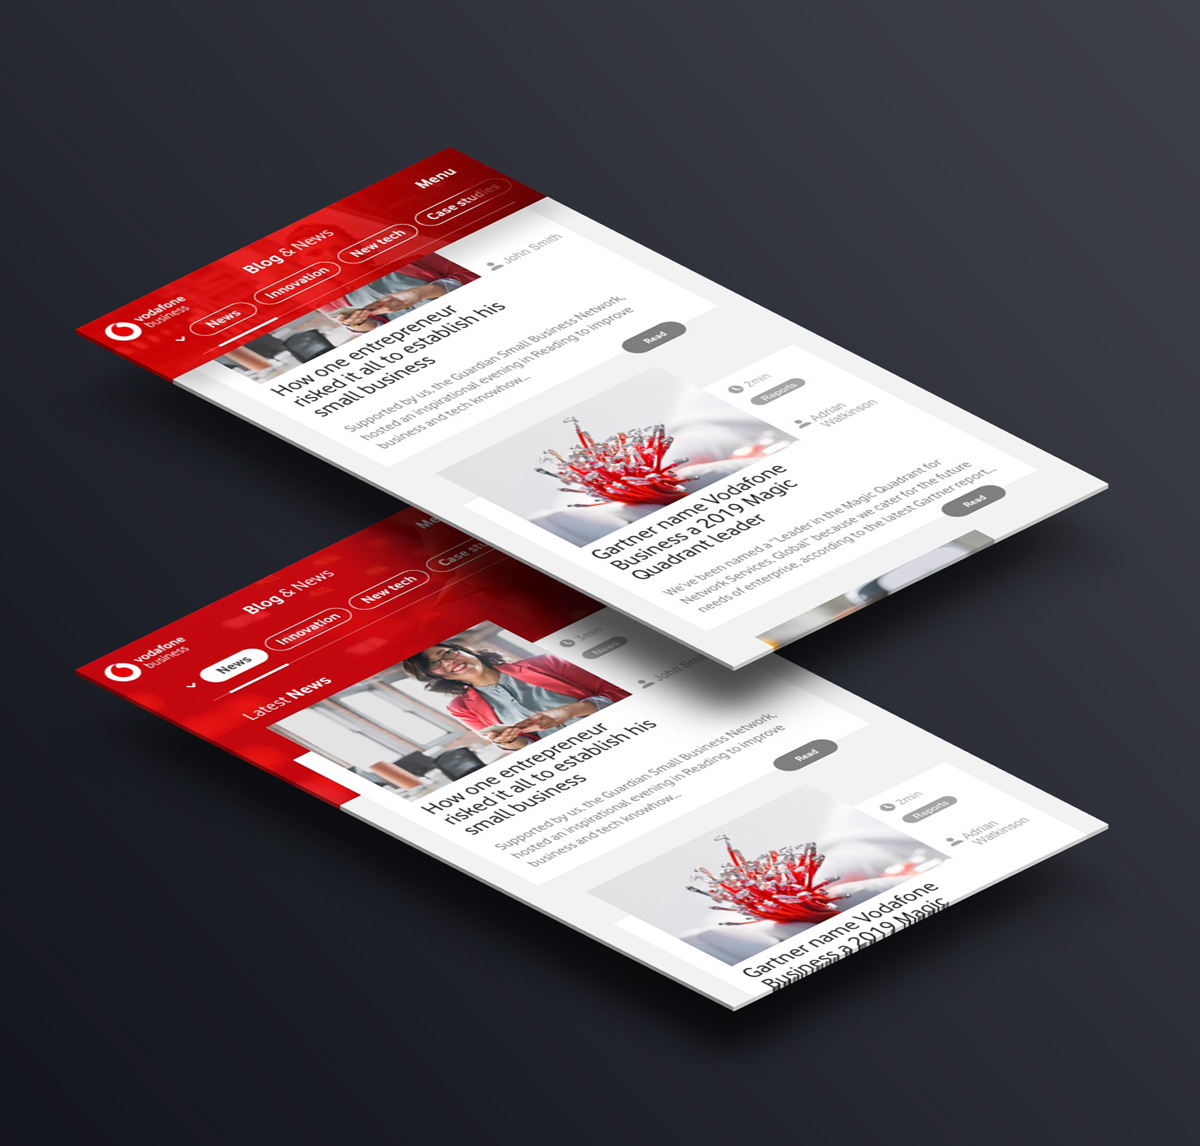 vodafone-business-content-blog-ui-prototype